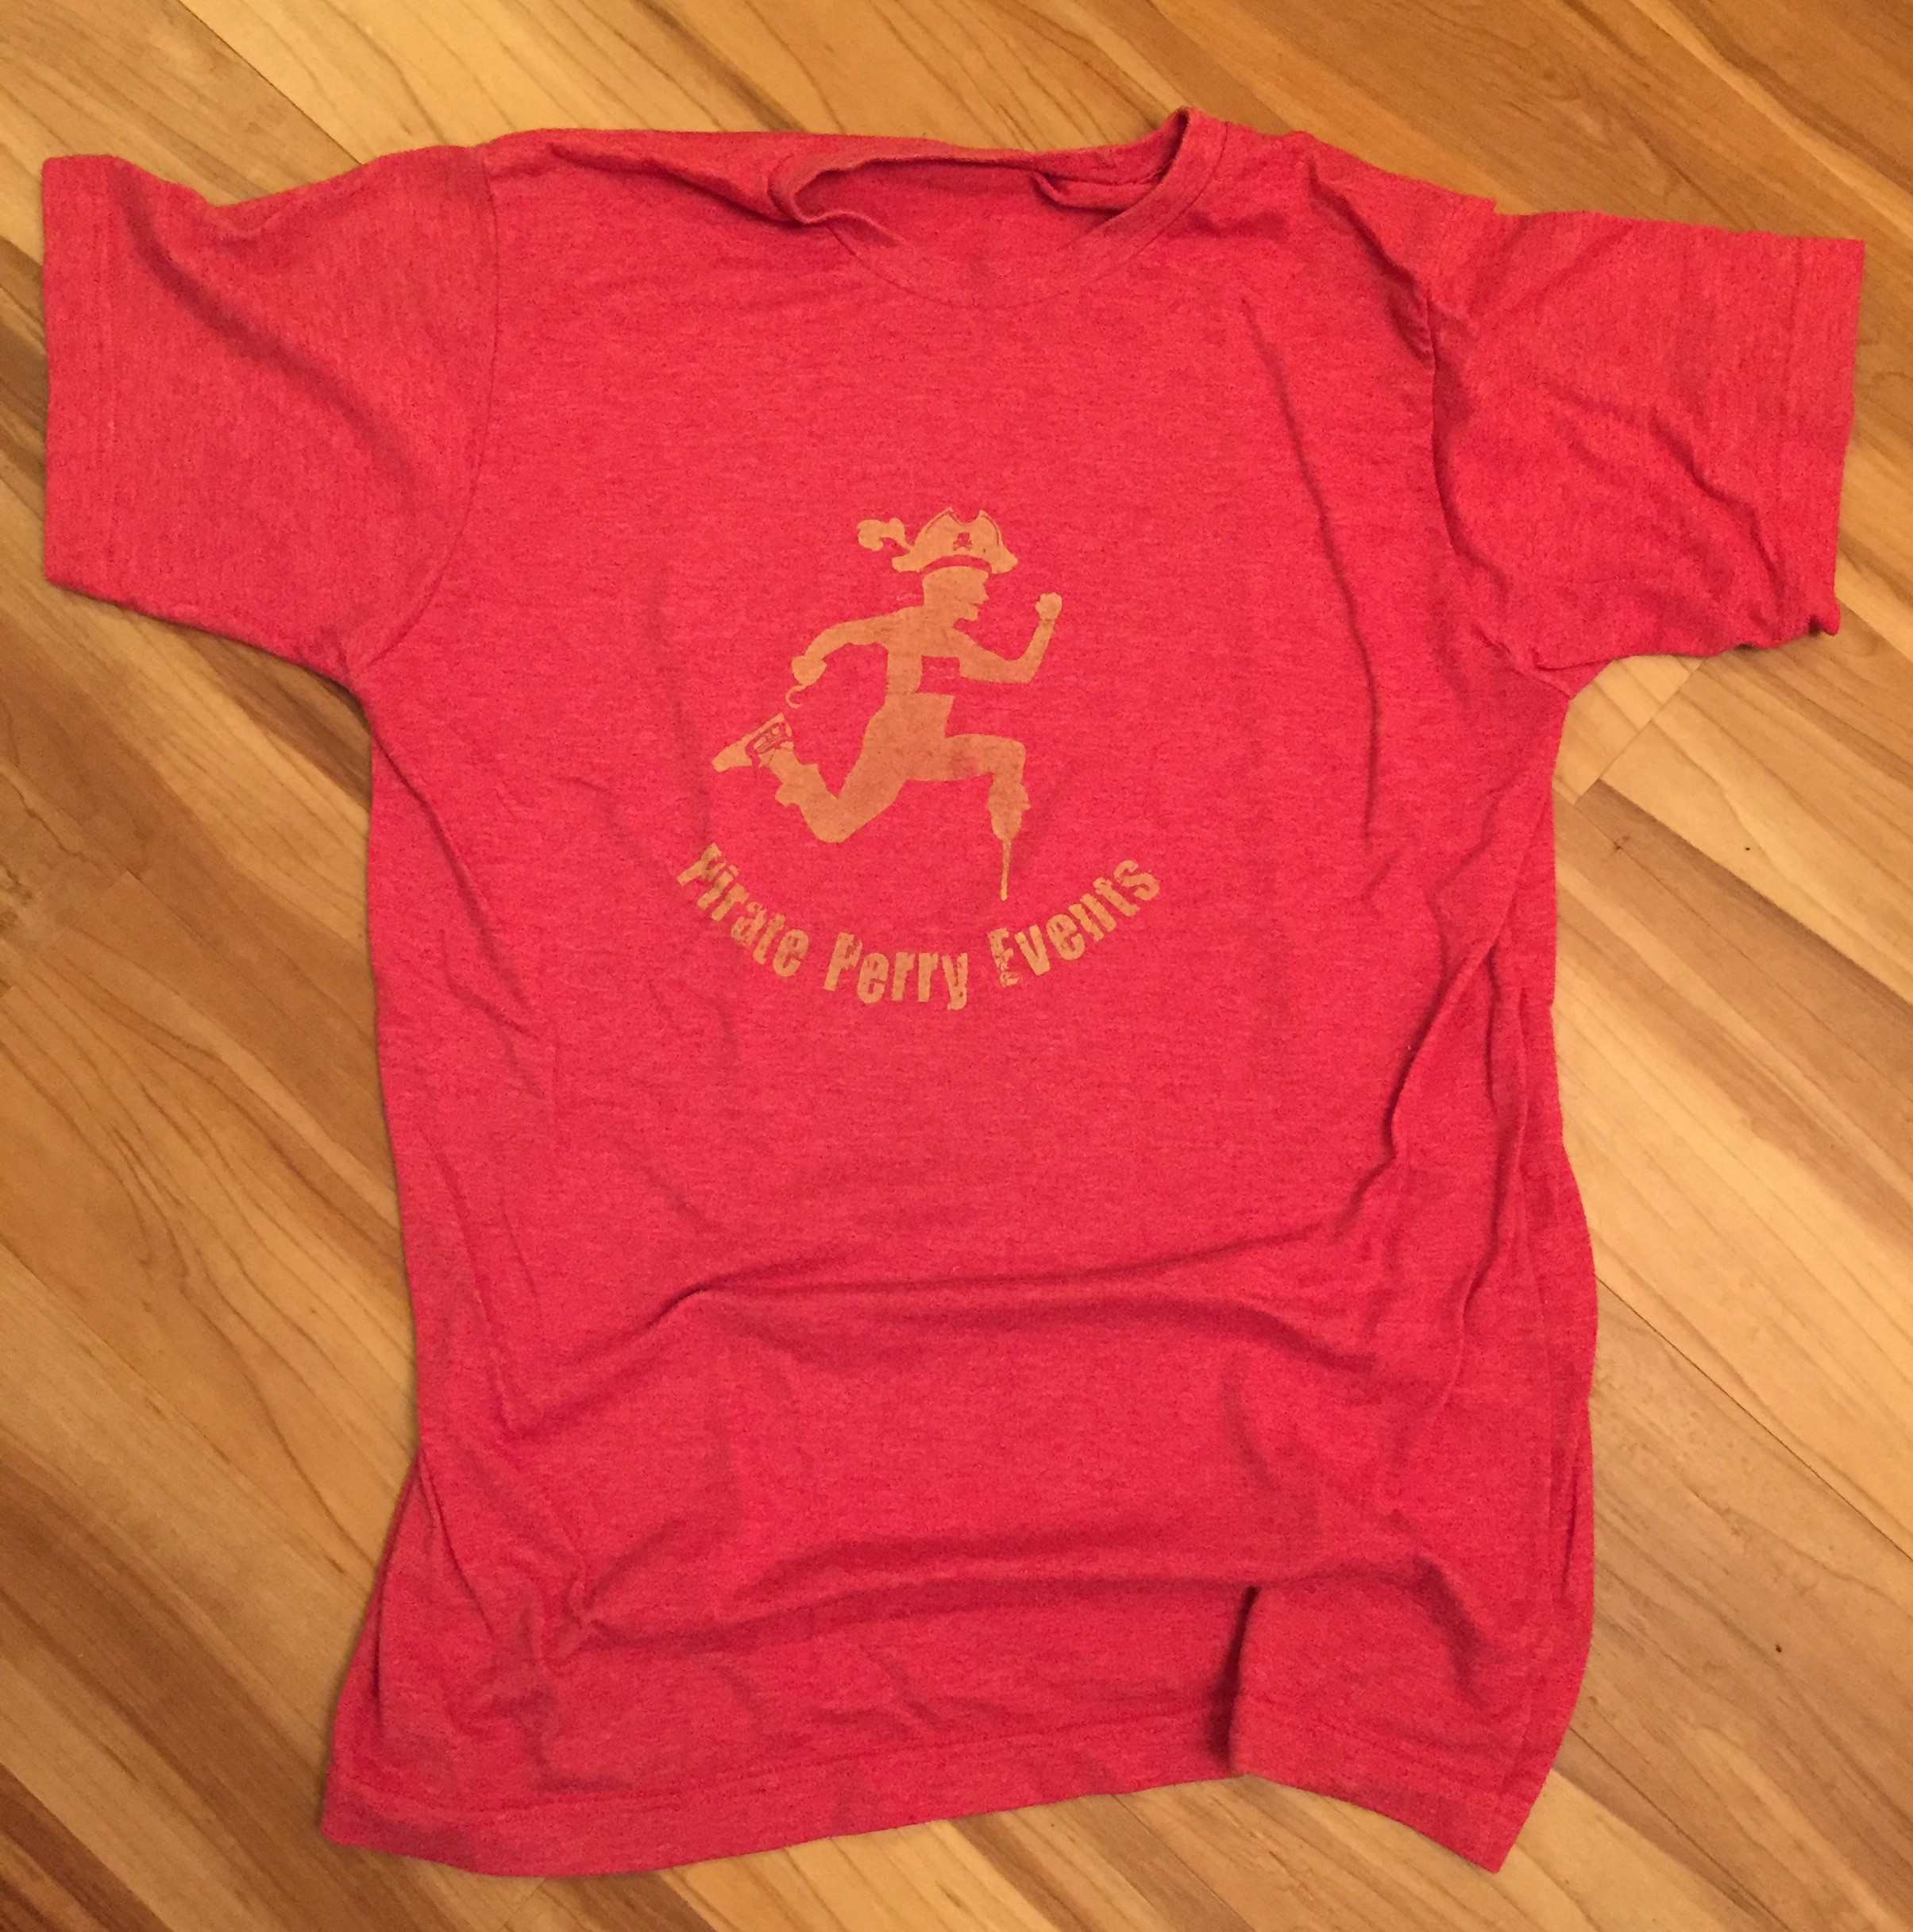 Pirate Perry Events T-shirt